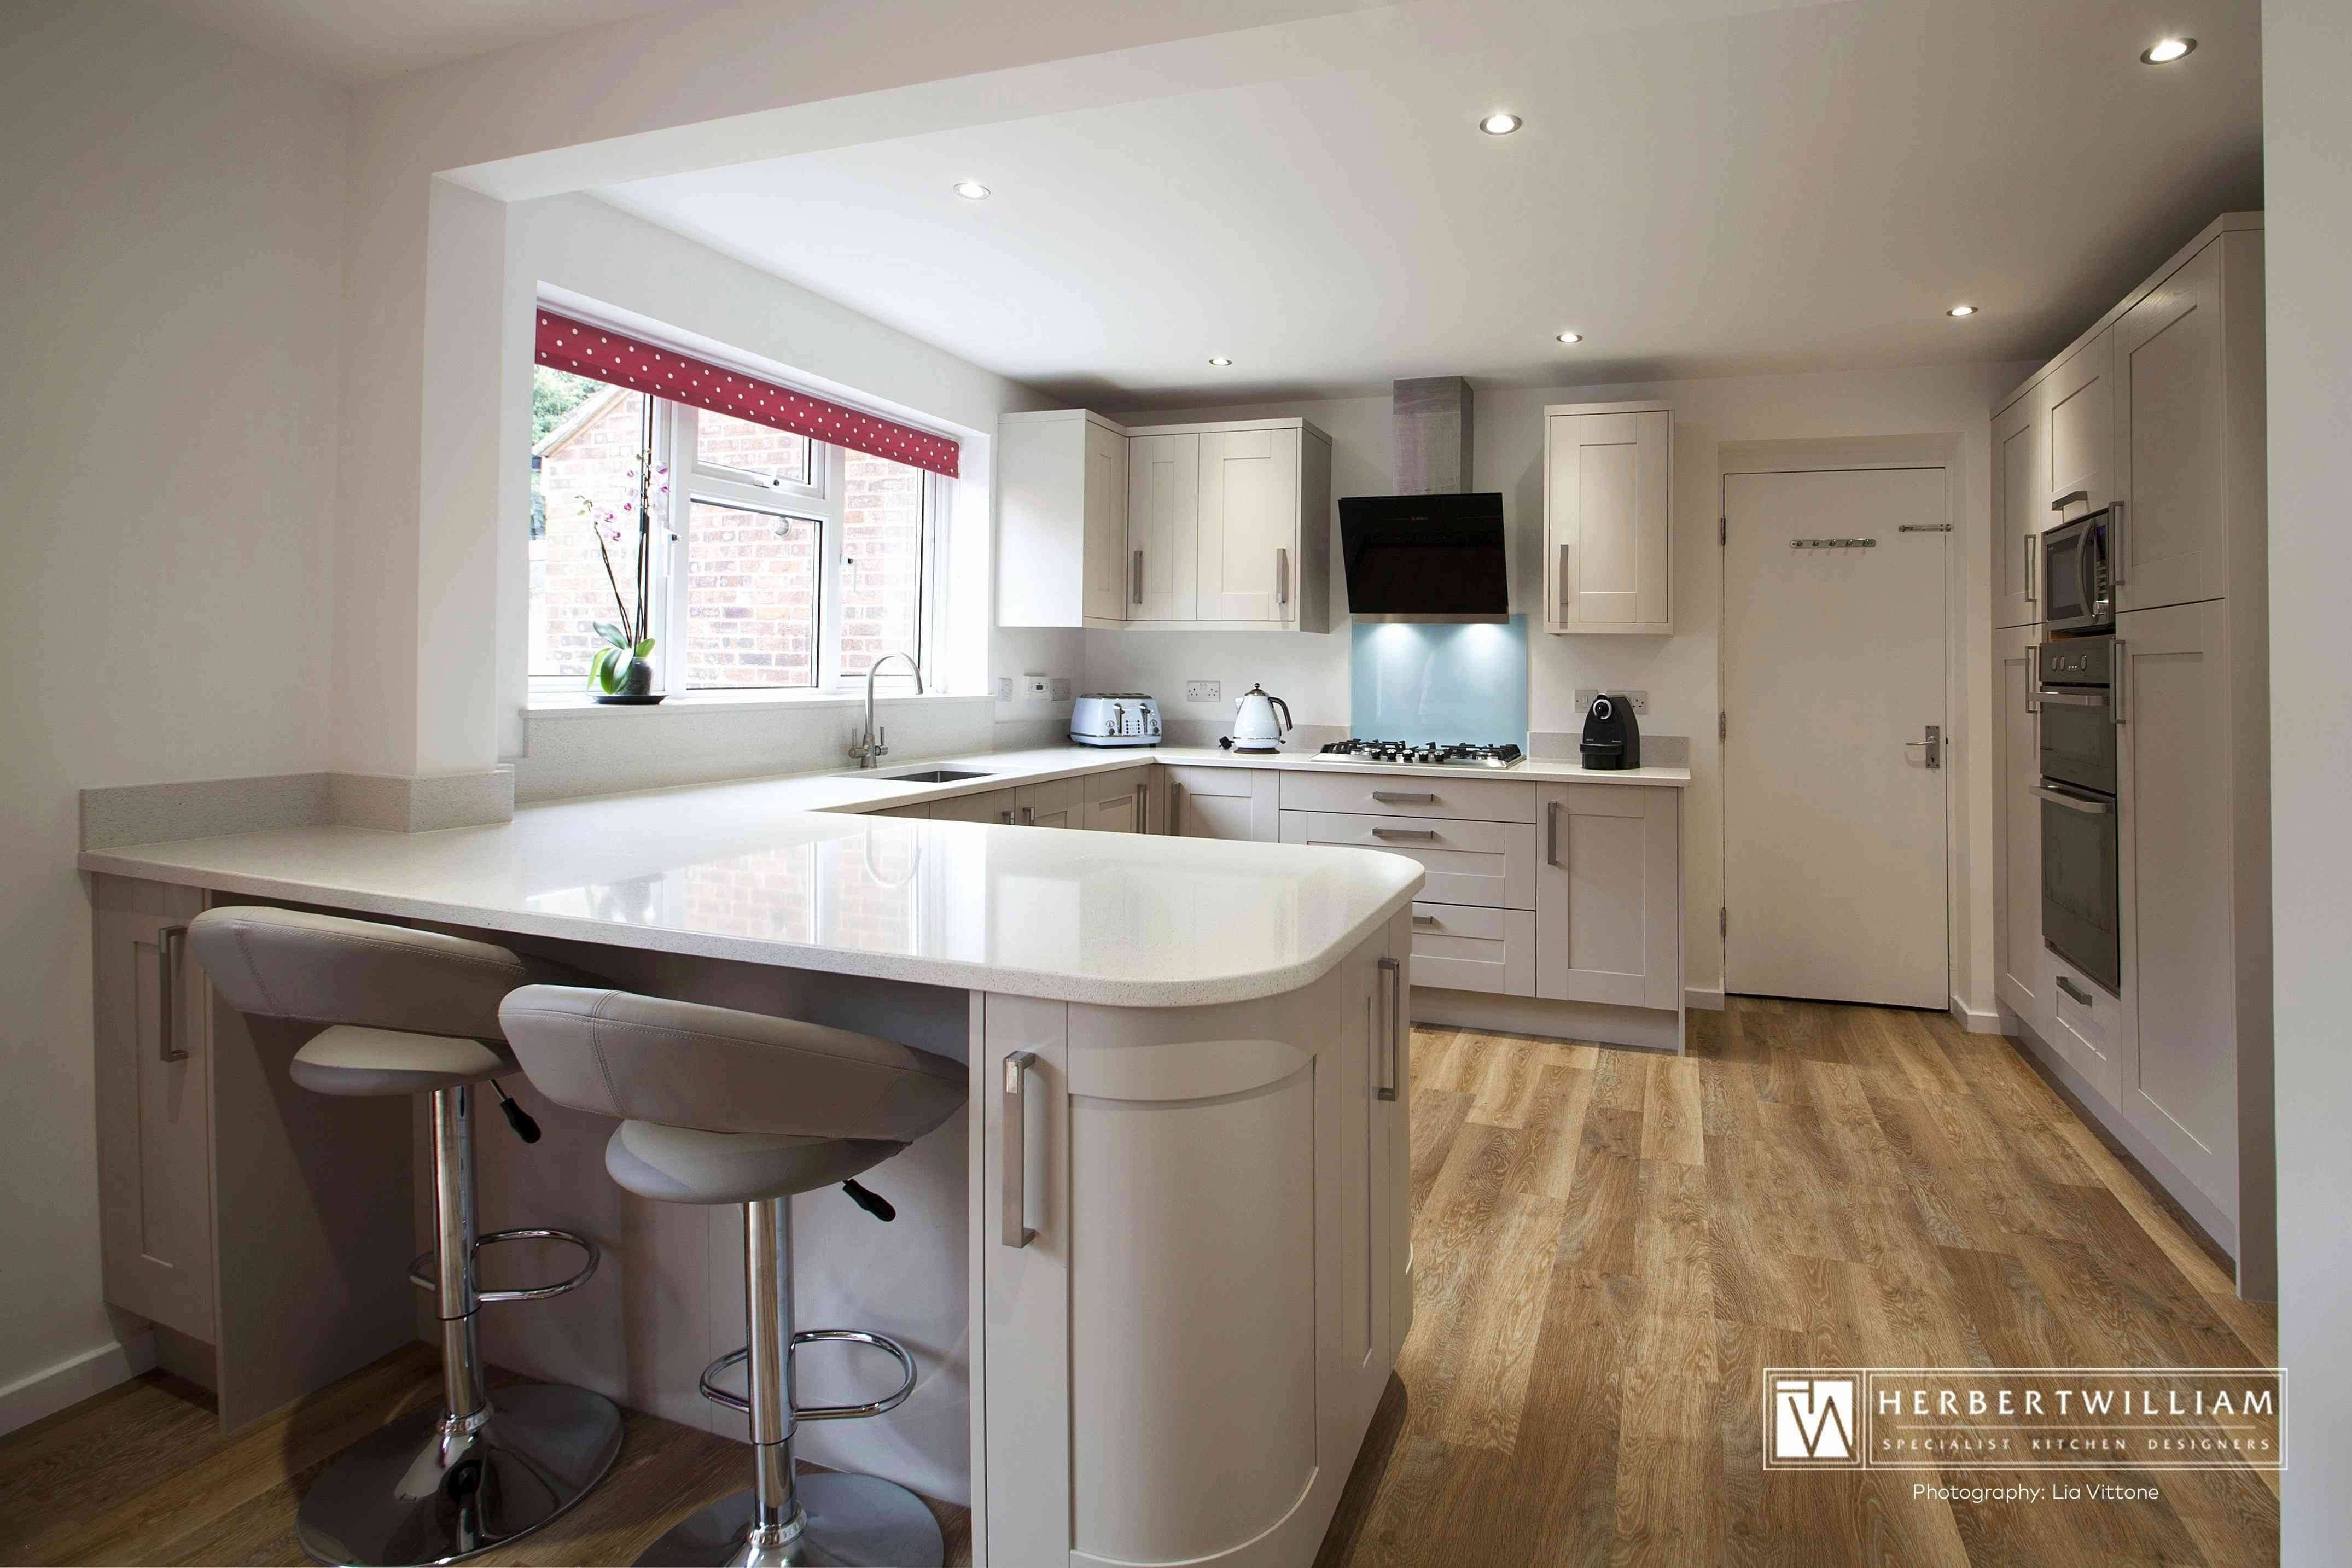 grey hardwood floors with white cabinets of 20 what is the best type of flooring for a kitchen youll love with regard to hardwood floors in the kitchen fresh where to buy hardwood flooring inspirational 0d grace place barnegat